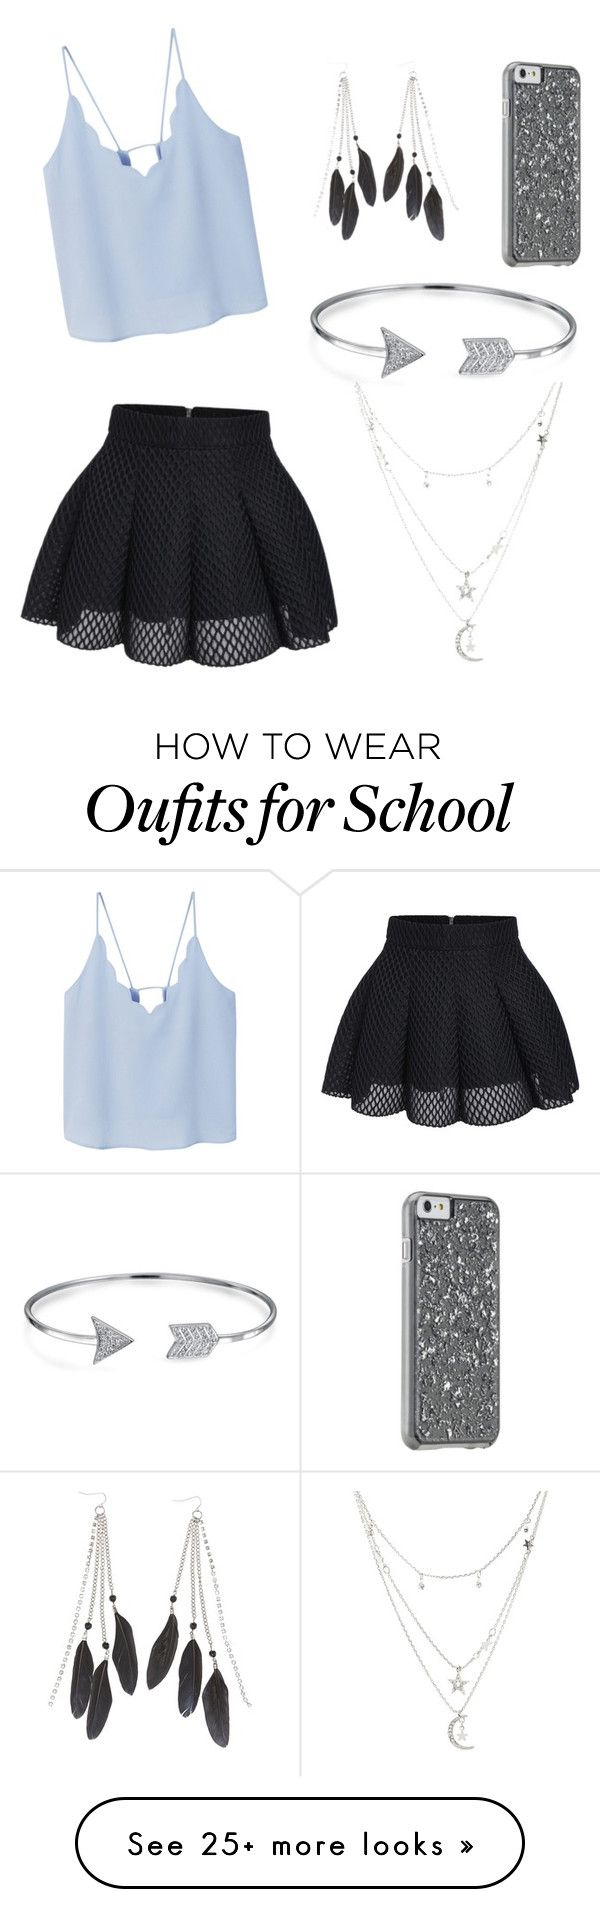 """Last day of school."" by mariahmata33 on Polyvore featuring MANGO, Charlotte Russe and Bling Jewelry"